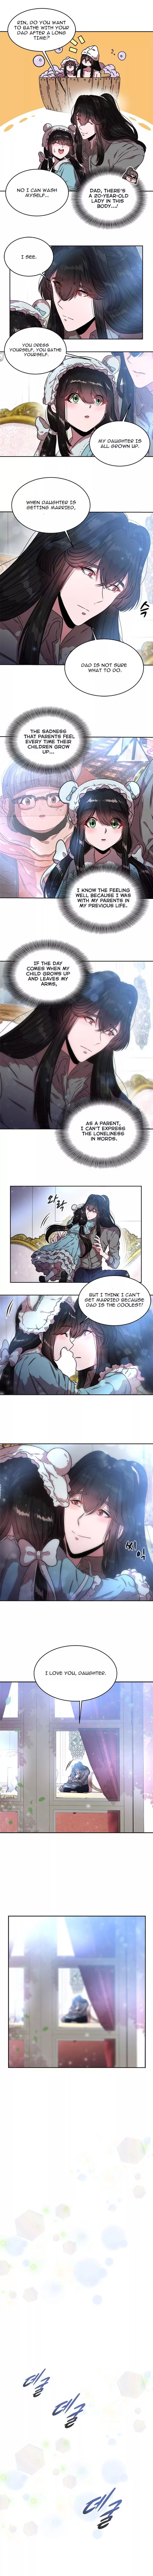 i_was_born_as_the_demon_lords_daughter_25_3